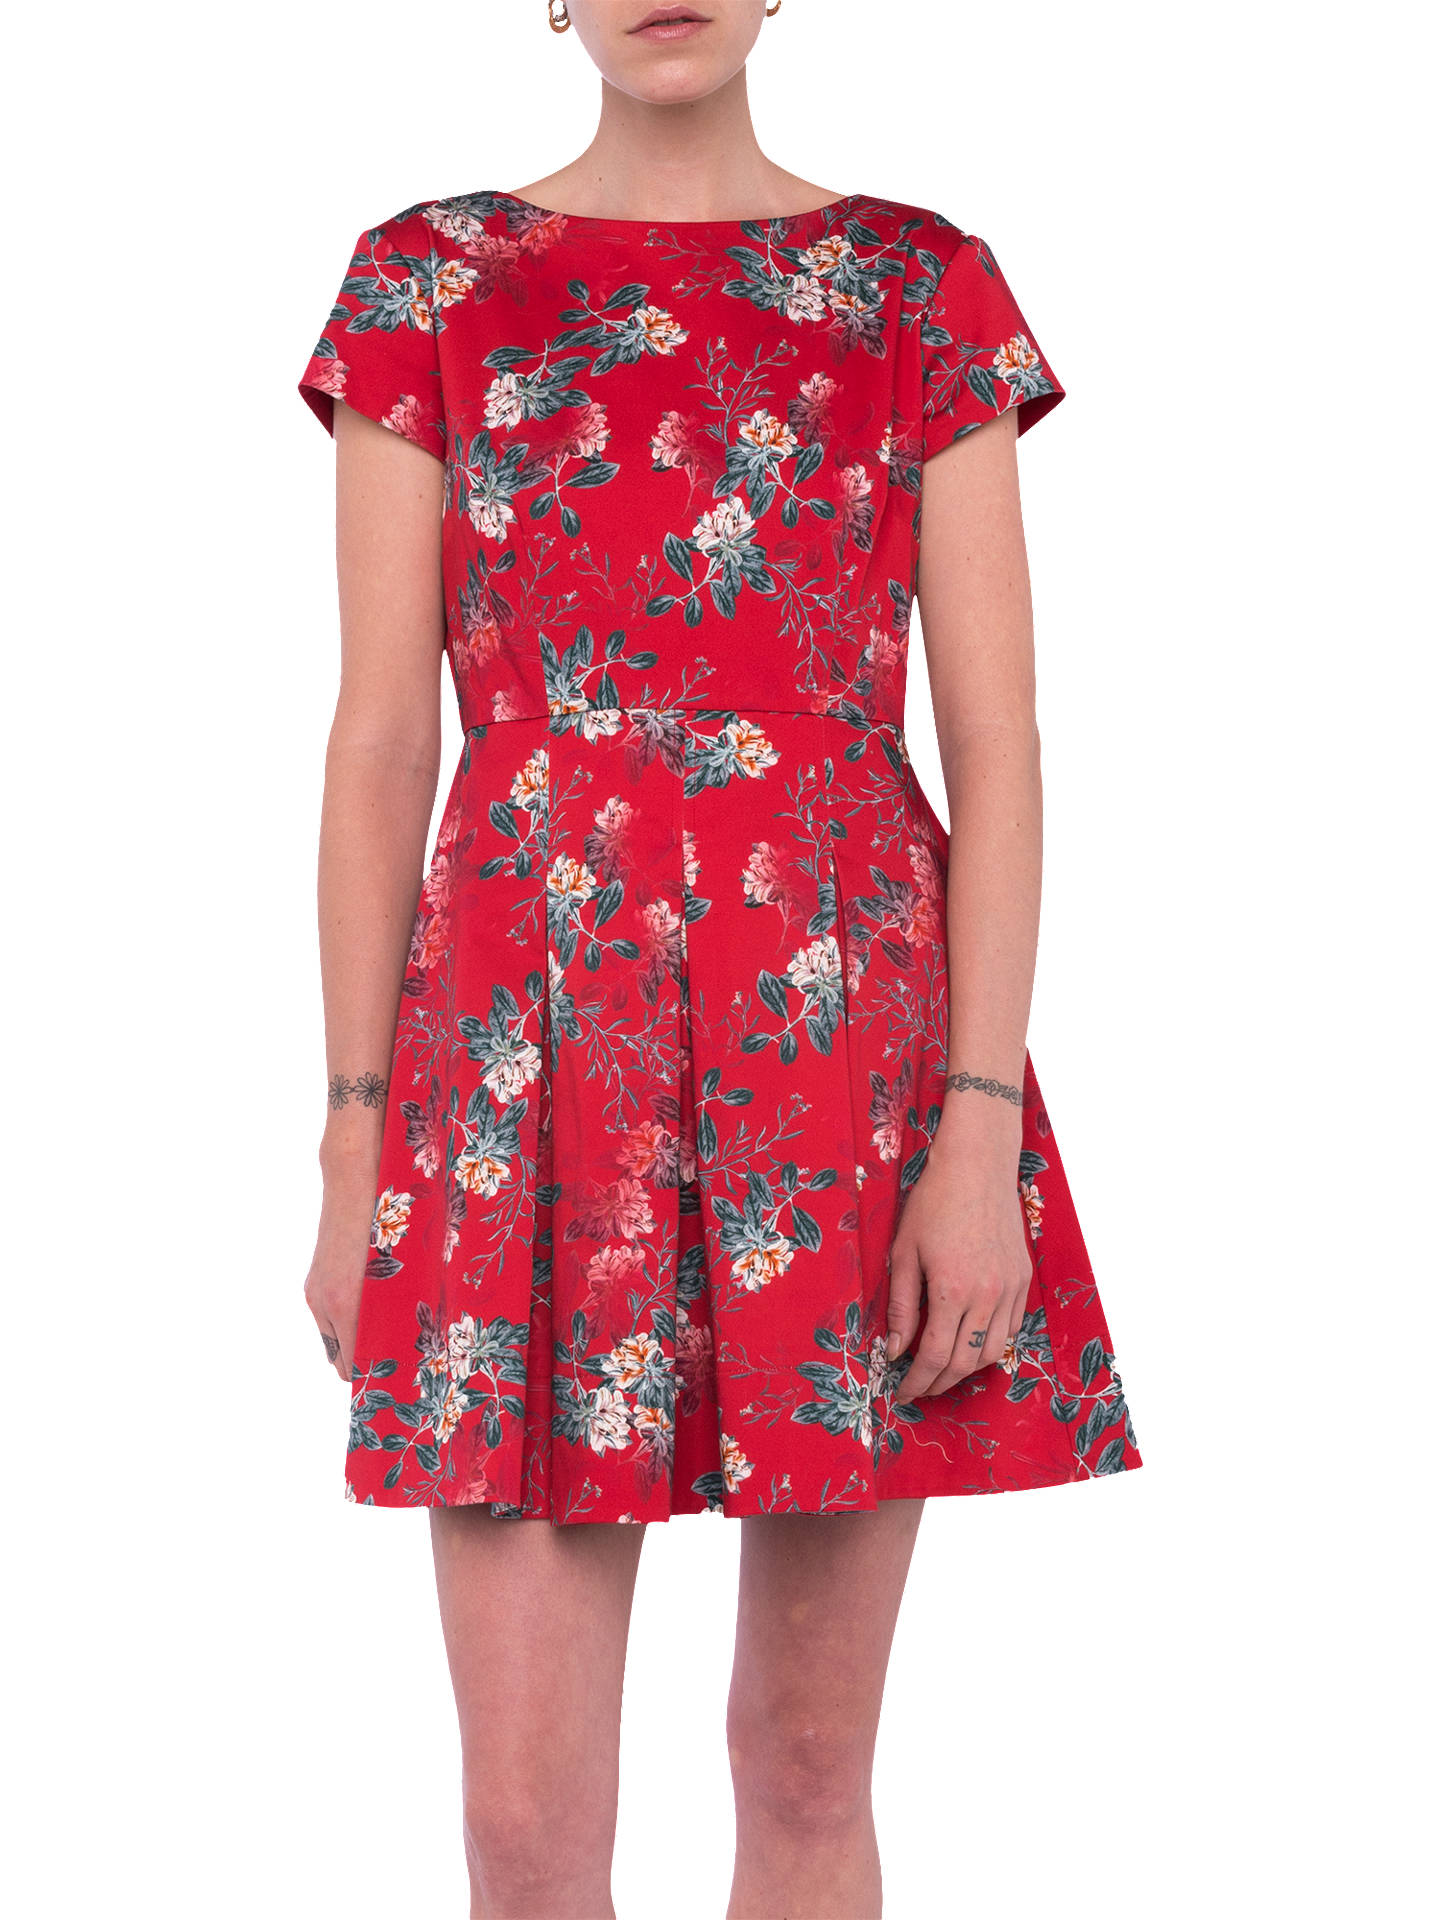 d973632b3e2 Buy French Connection Kioa Dress, Multi/Red, 6 Online at johnlewis.com